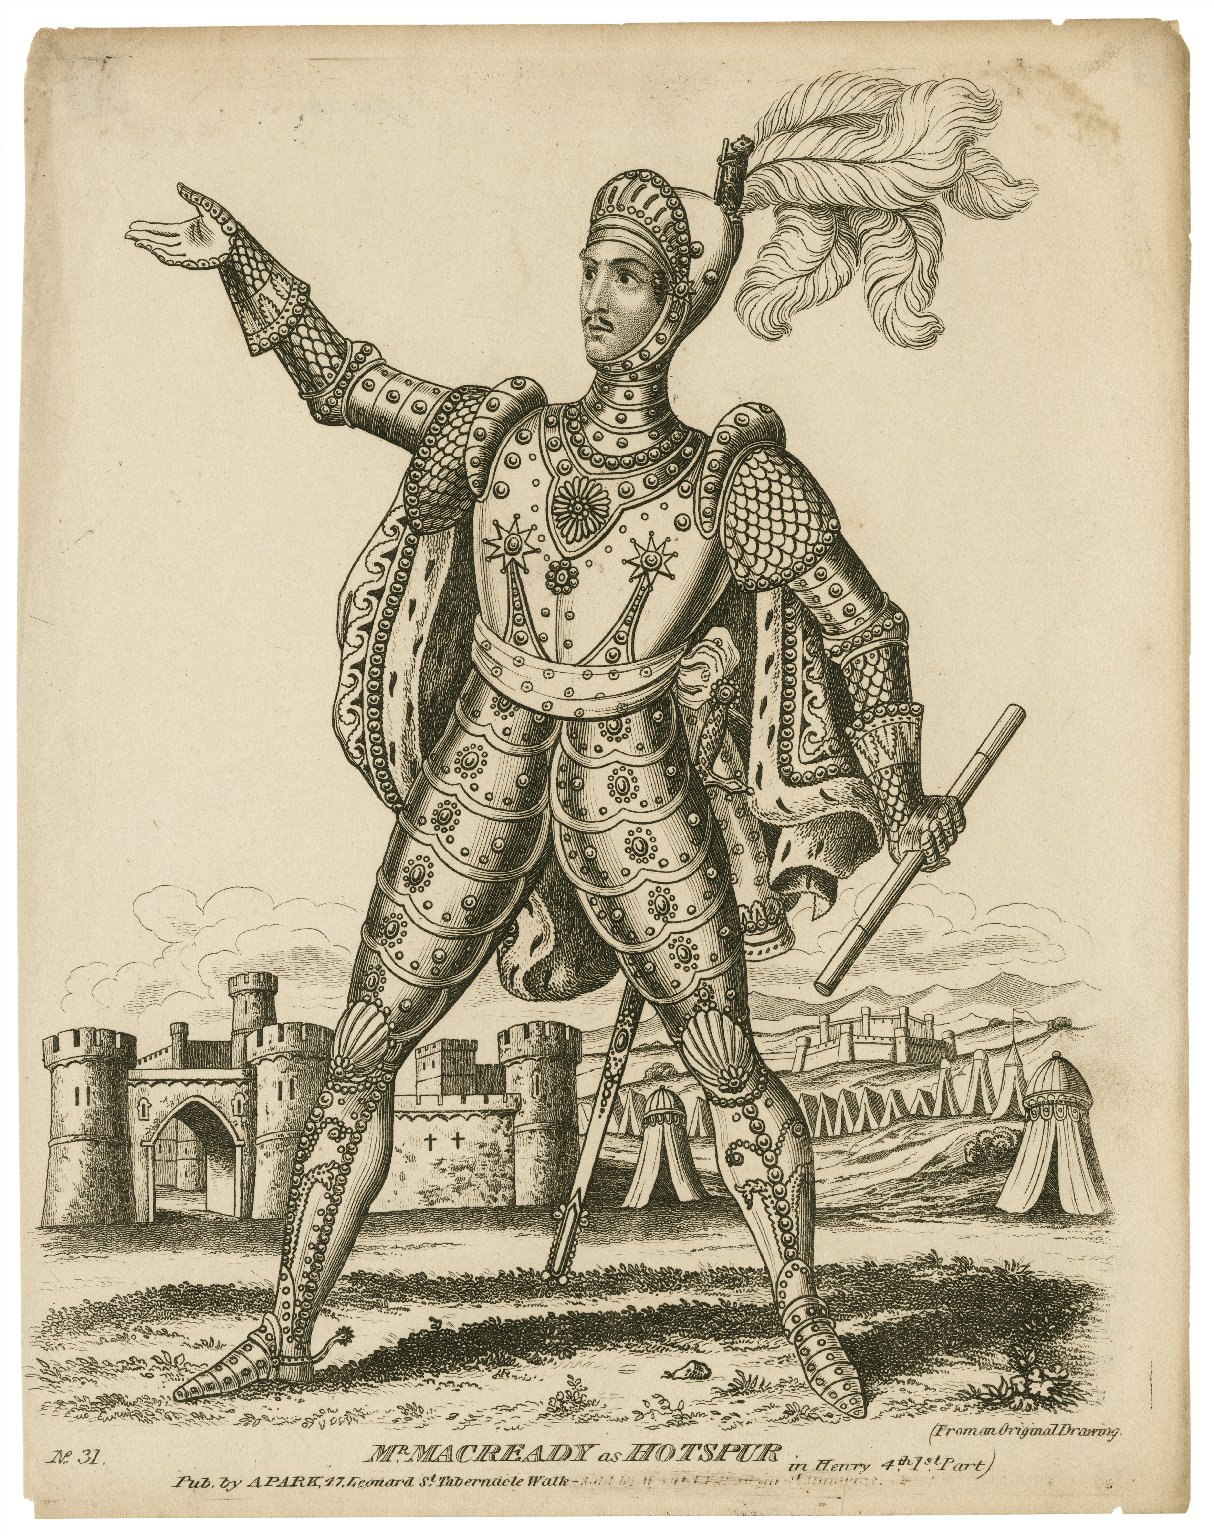 Black and white 19th-century illustration of a man in elaborate armor standing with his arm upraised with a castle in the background